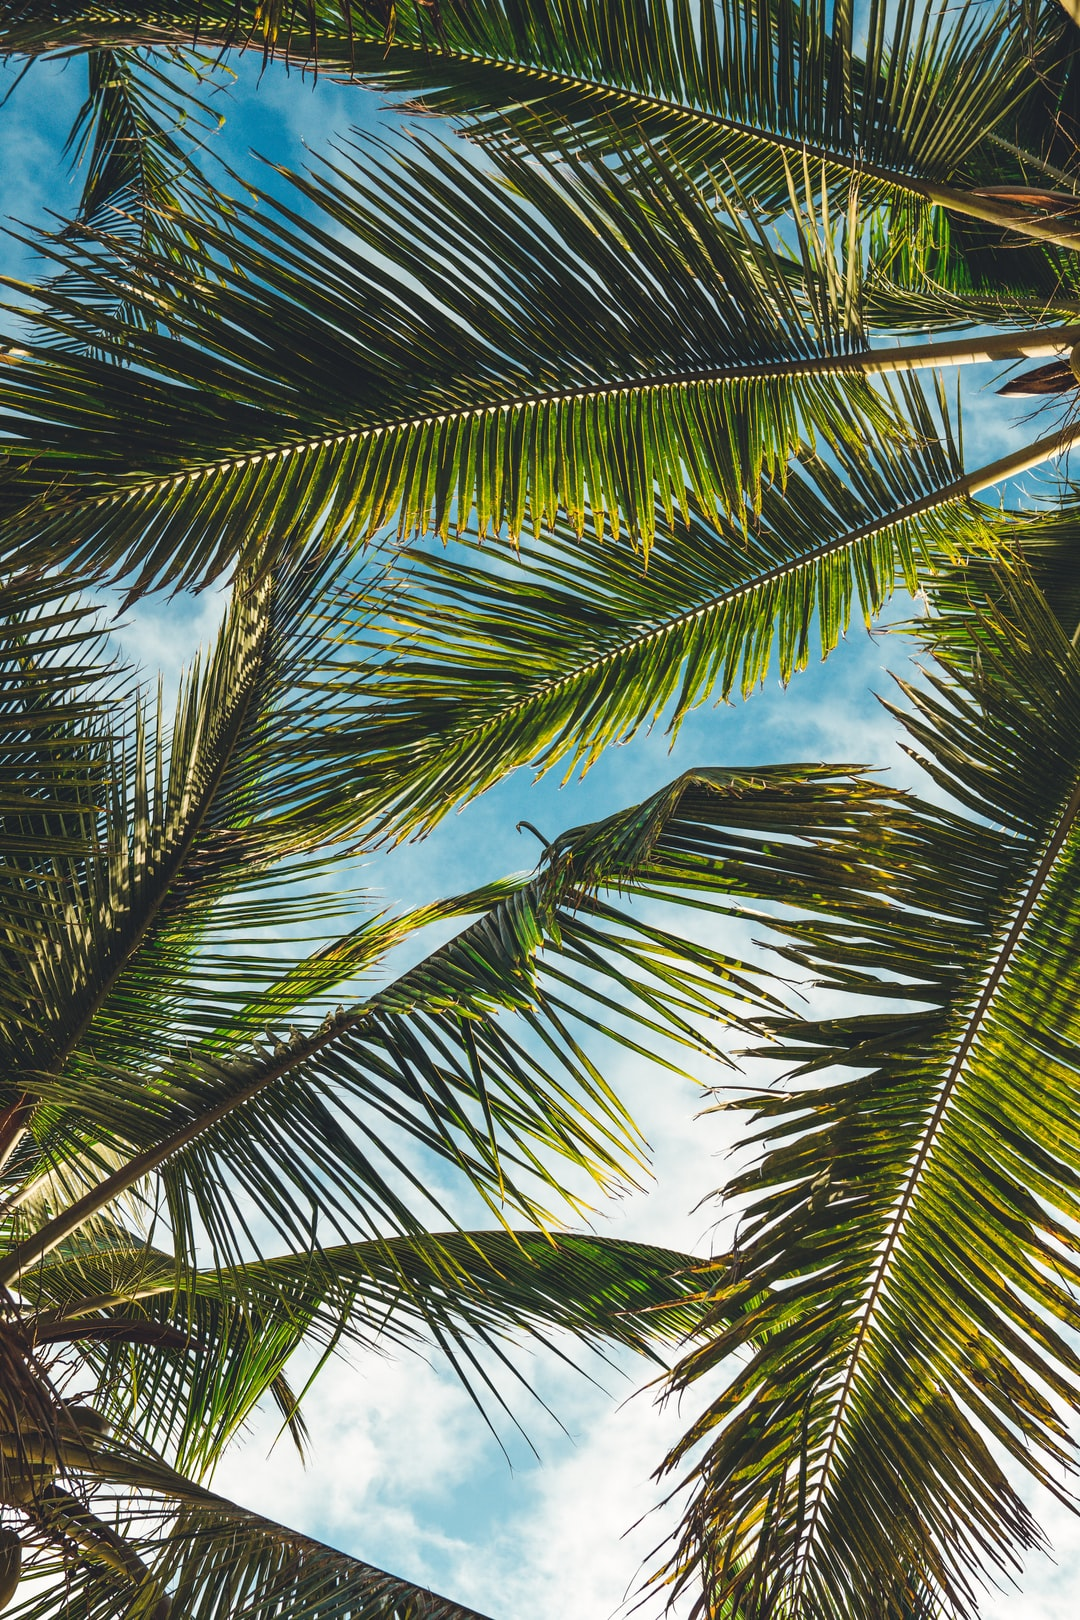 Tree leaf plant and palm tree hd photo by peter fogden petefogden on unsplash - Free palm tree screensavers ...